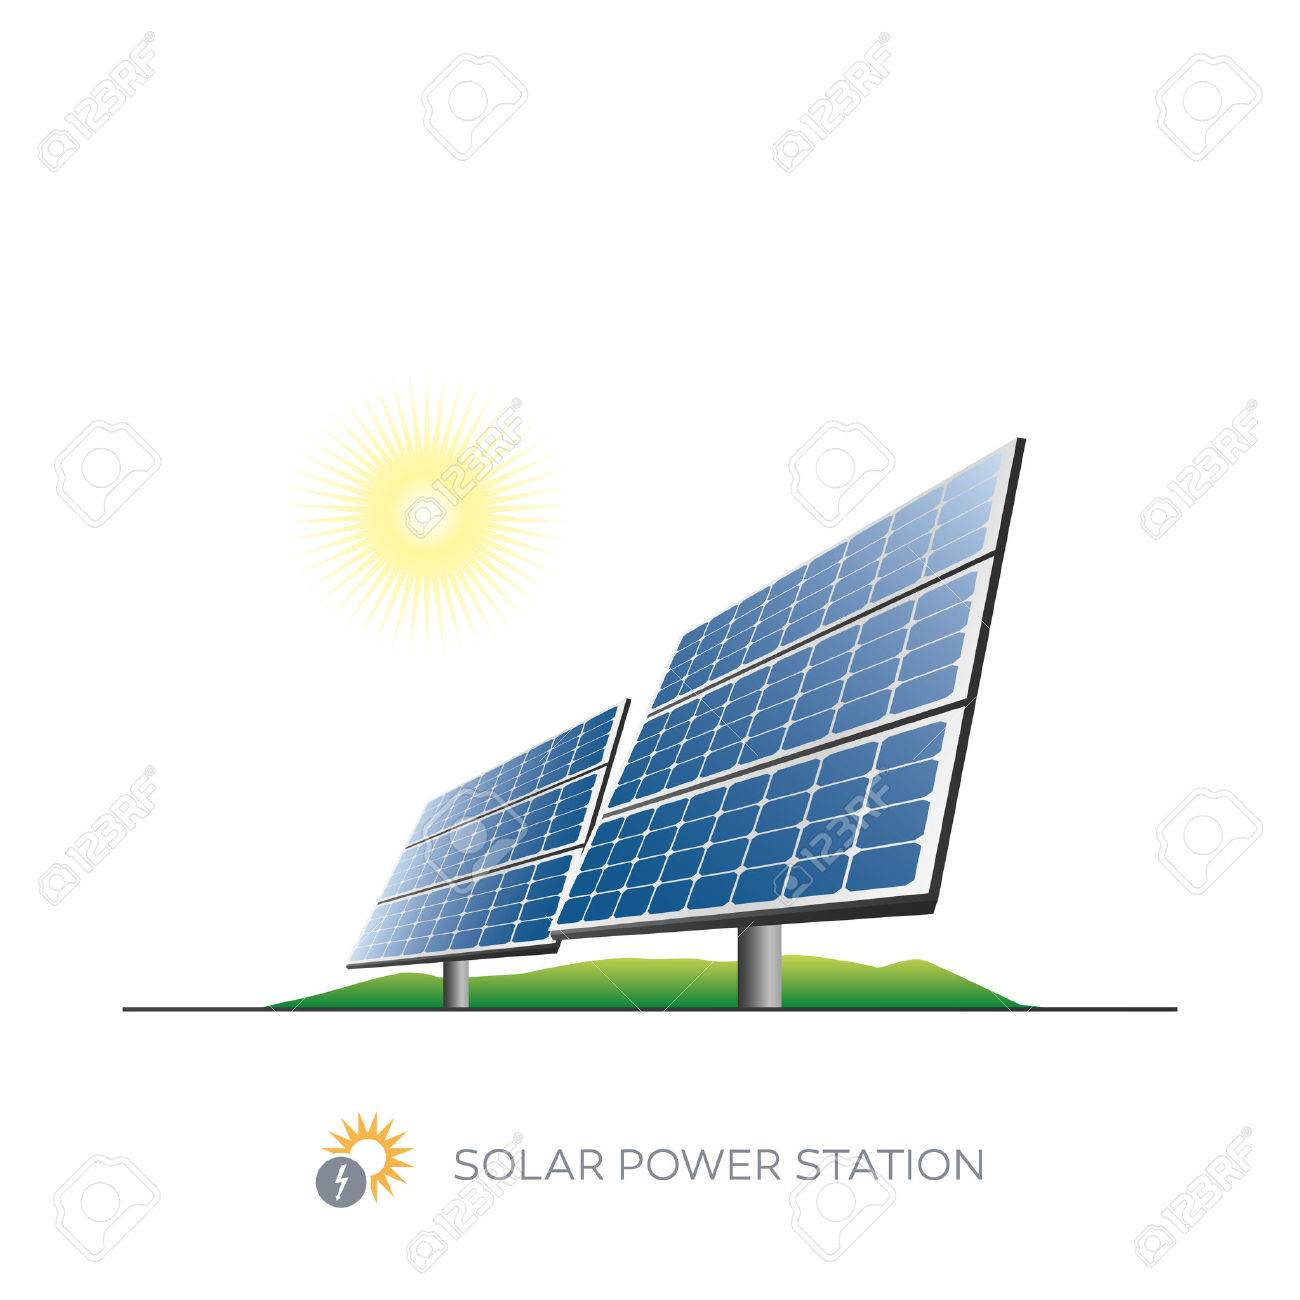 Isolated solar power station icon with sun on white background - 27535703